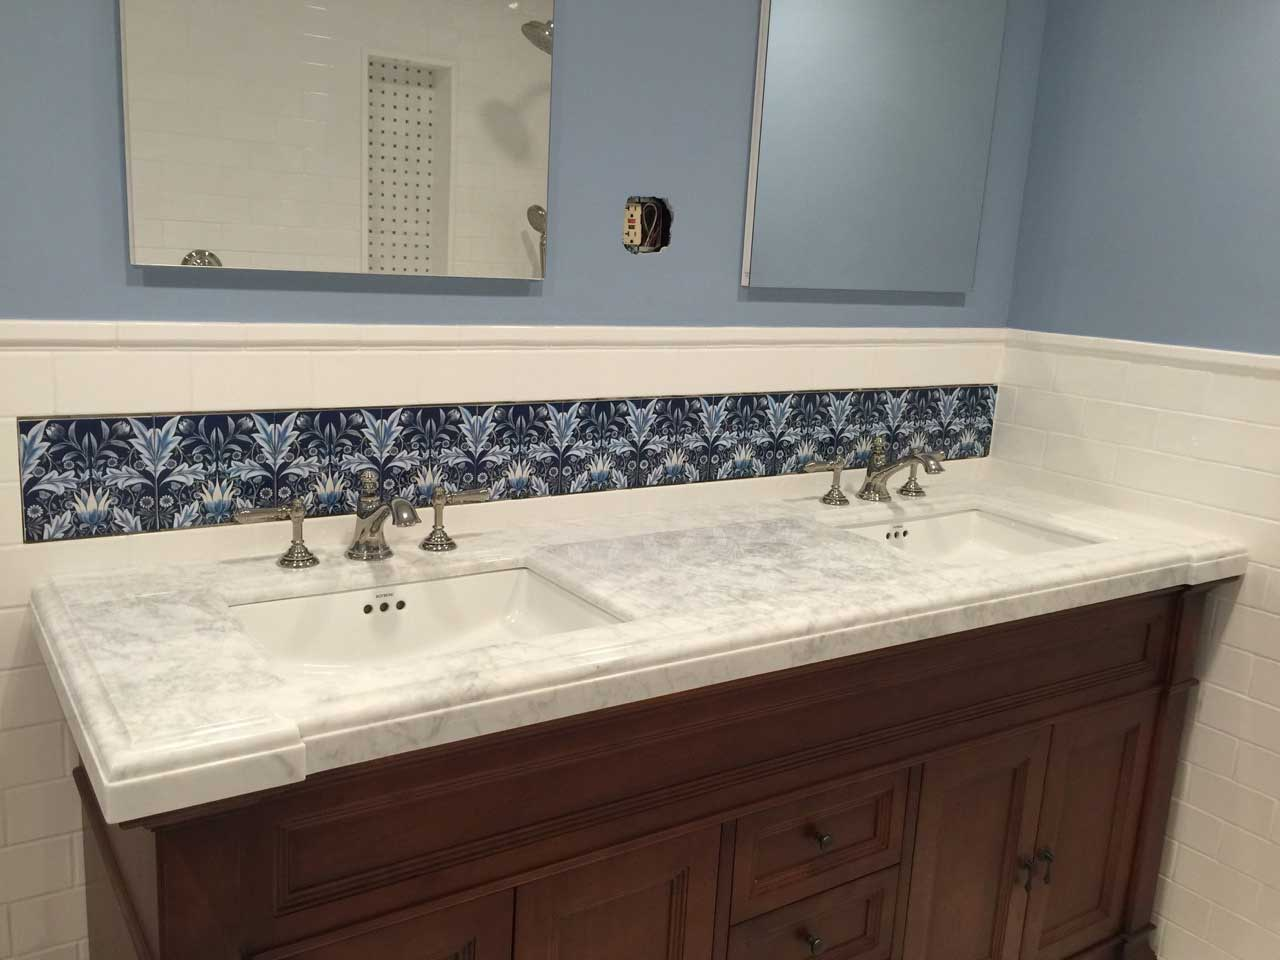 Membland Accent Tiles over sink in Brooklyn, New York